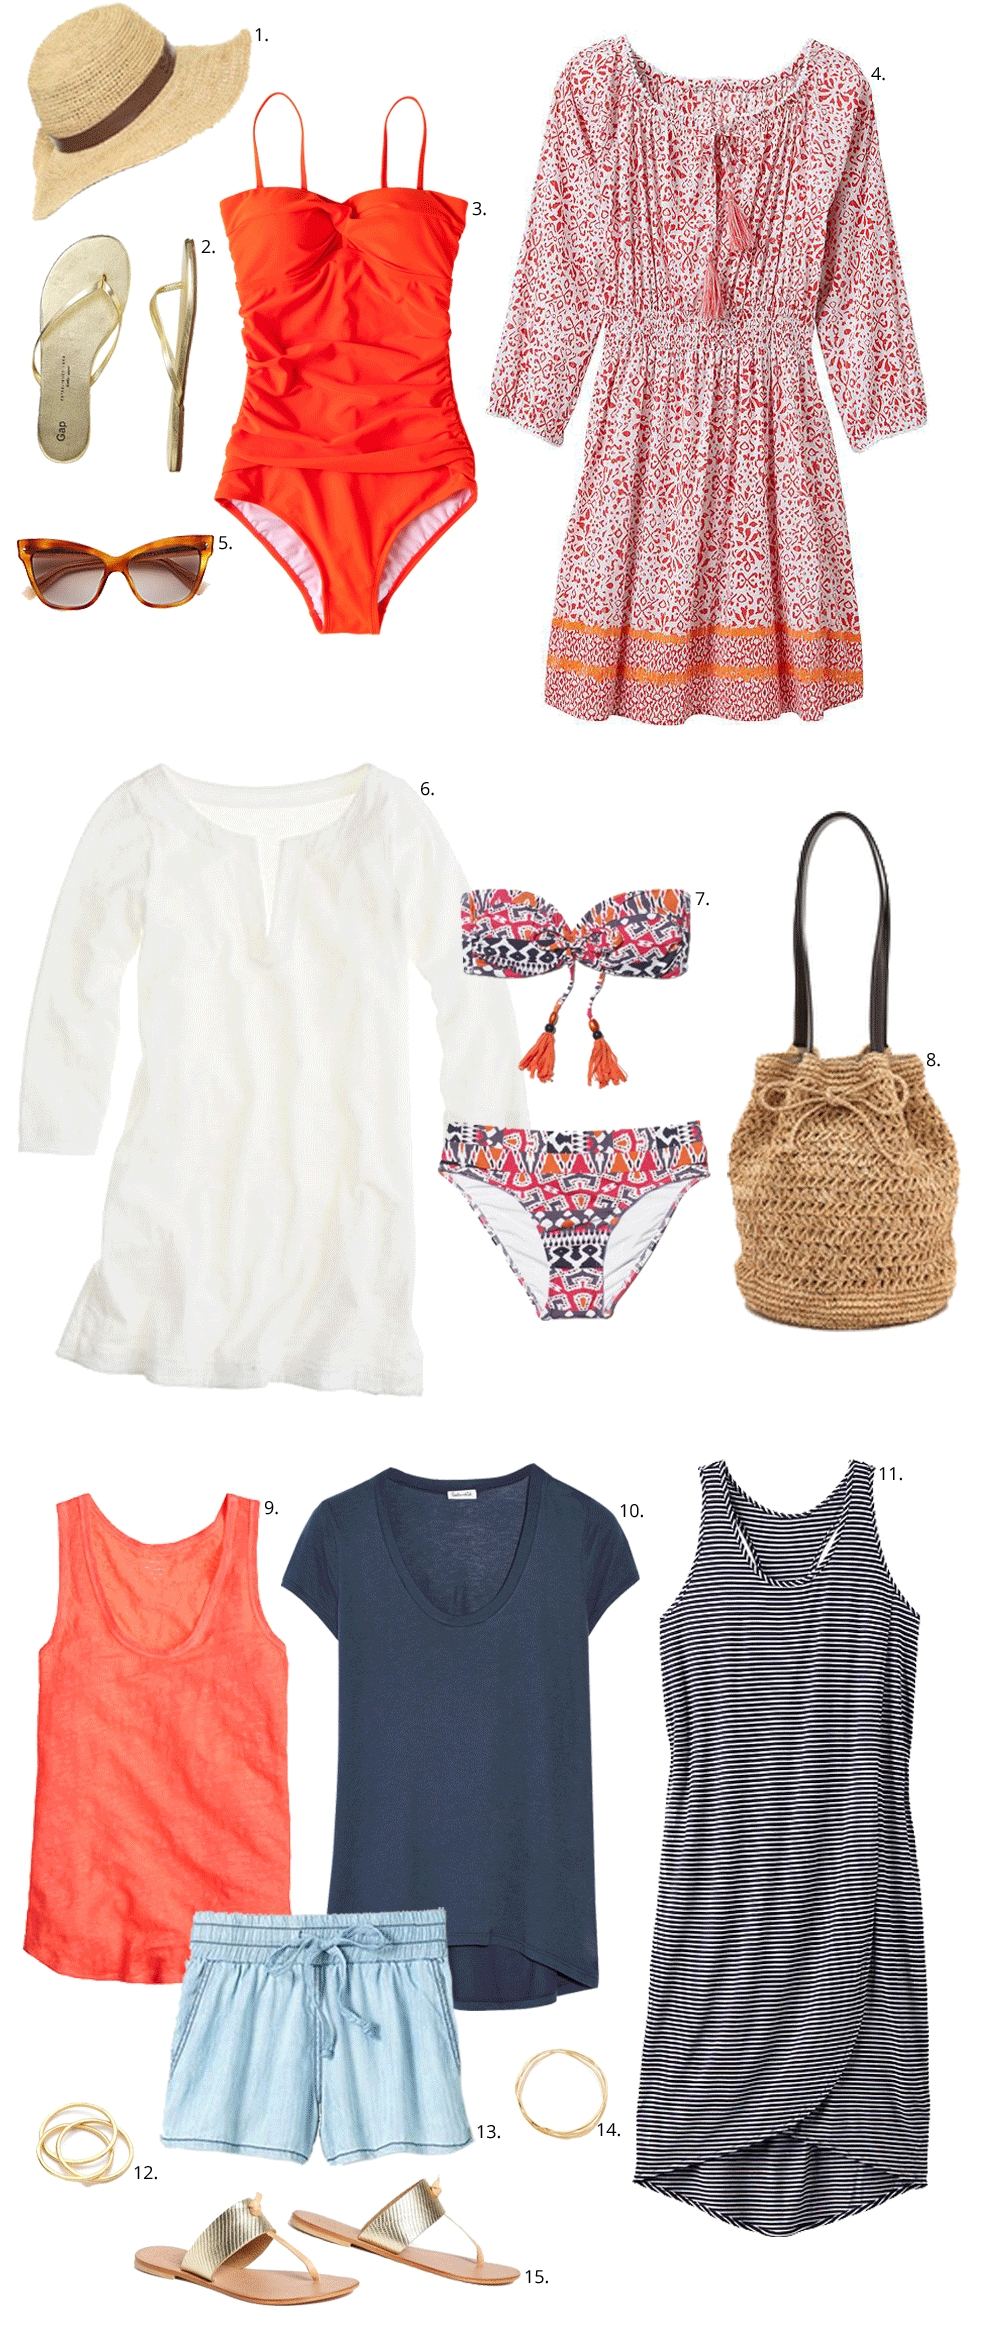 10 Awesome Labor Day Weekend Trip Ideas what to wear for your labor day weekend at the beach outfituation 2020